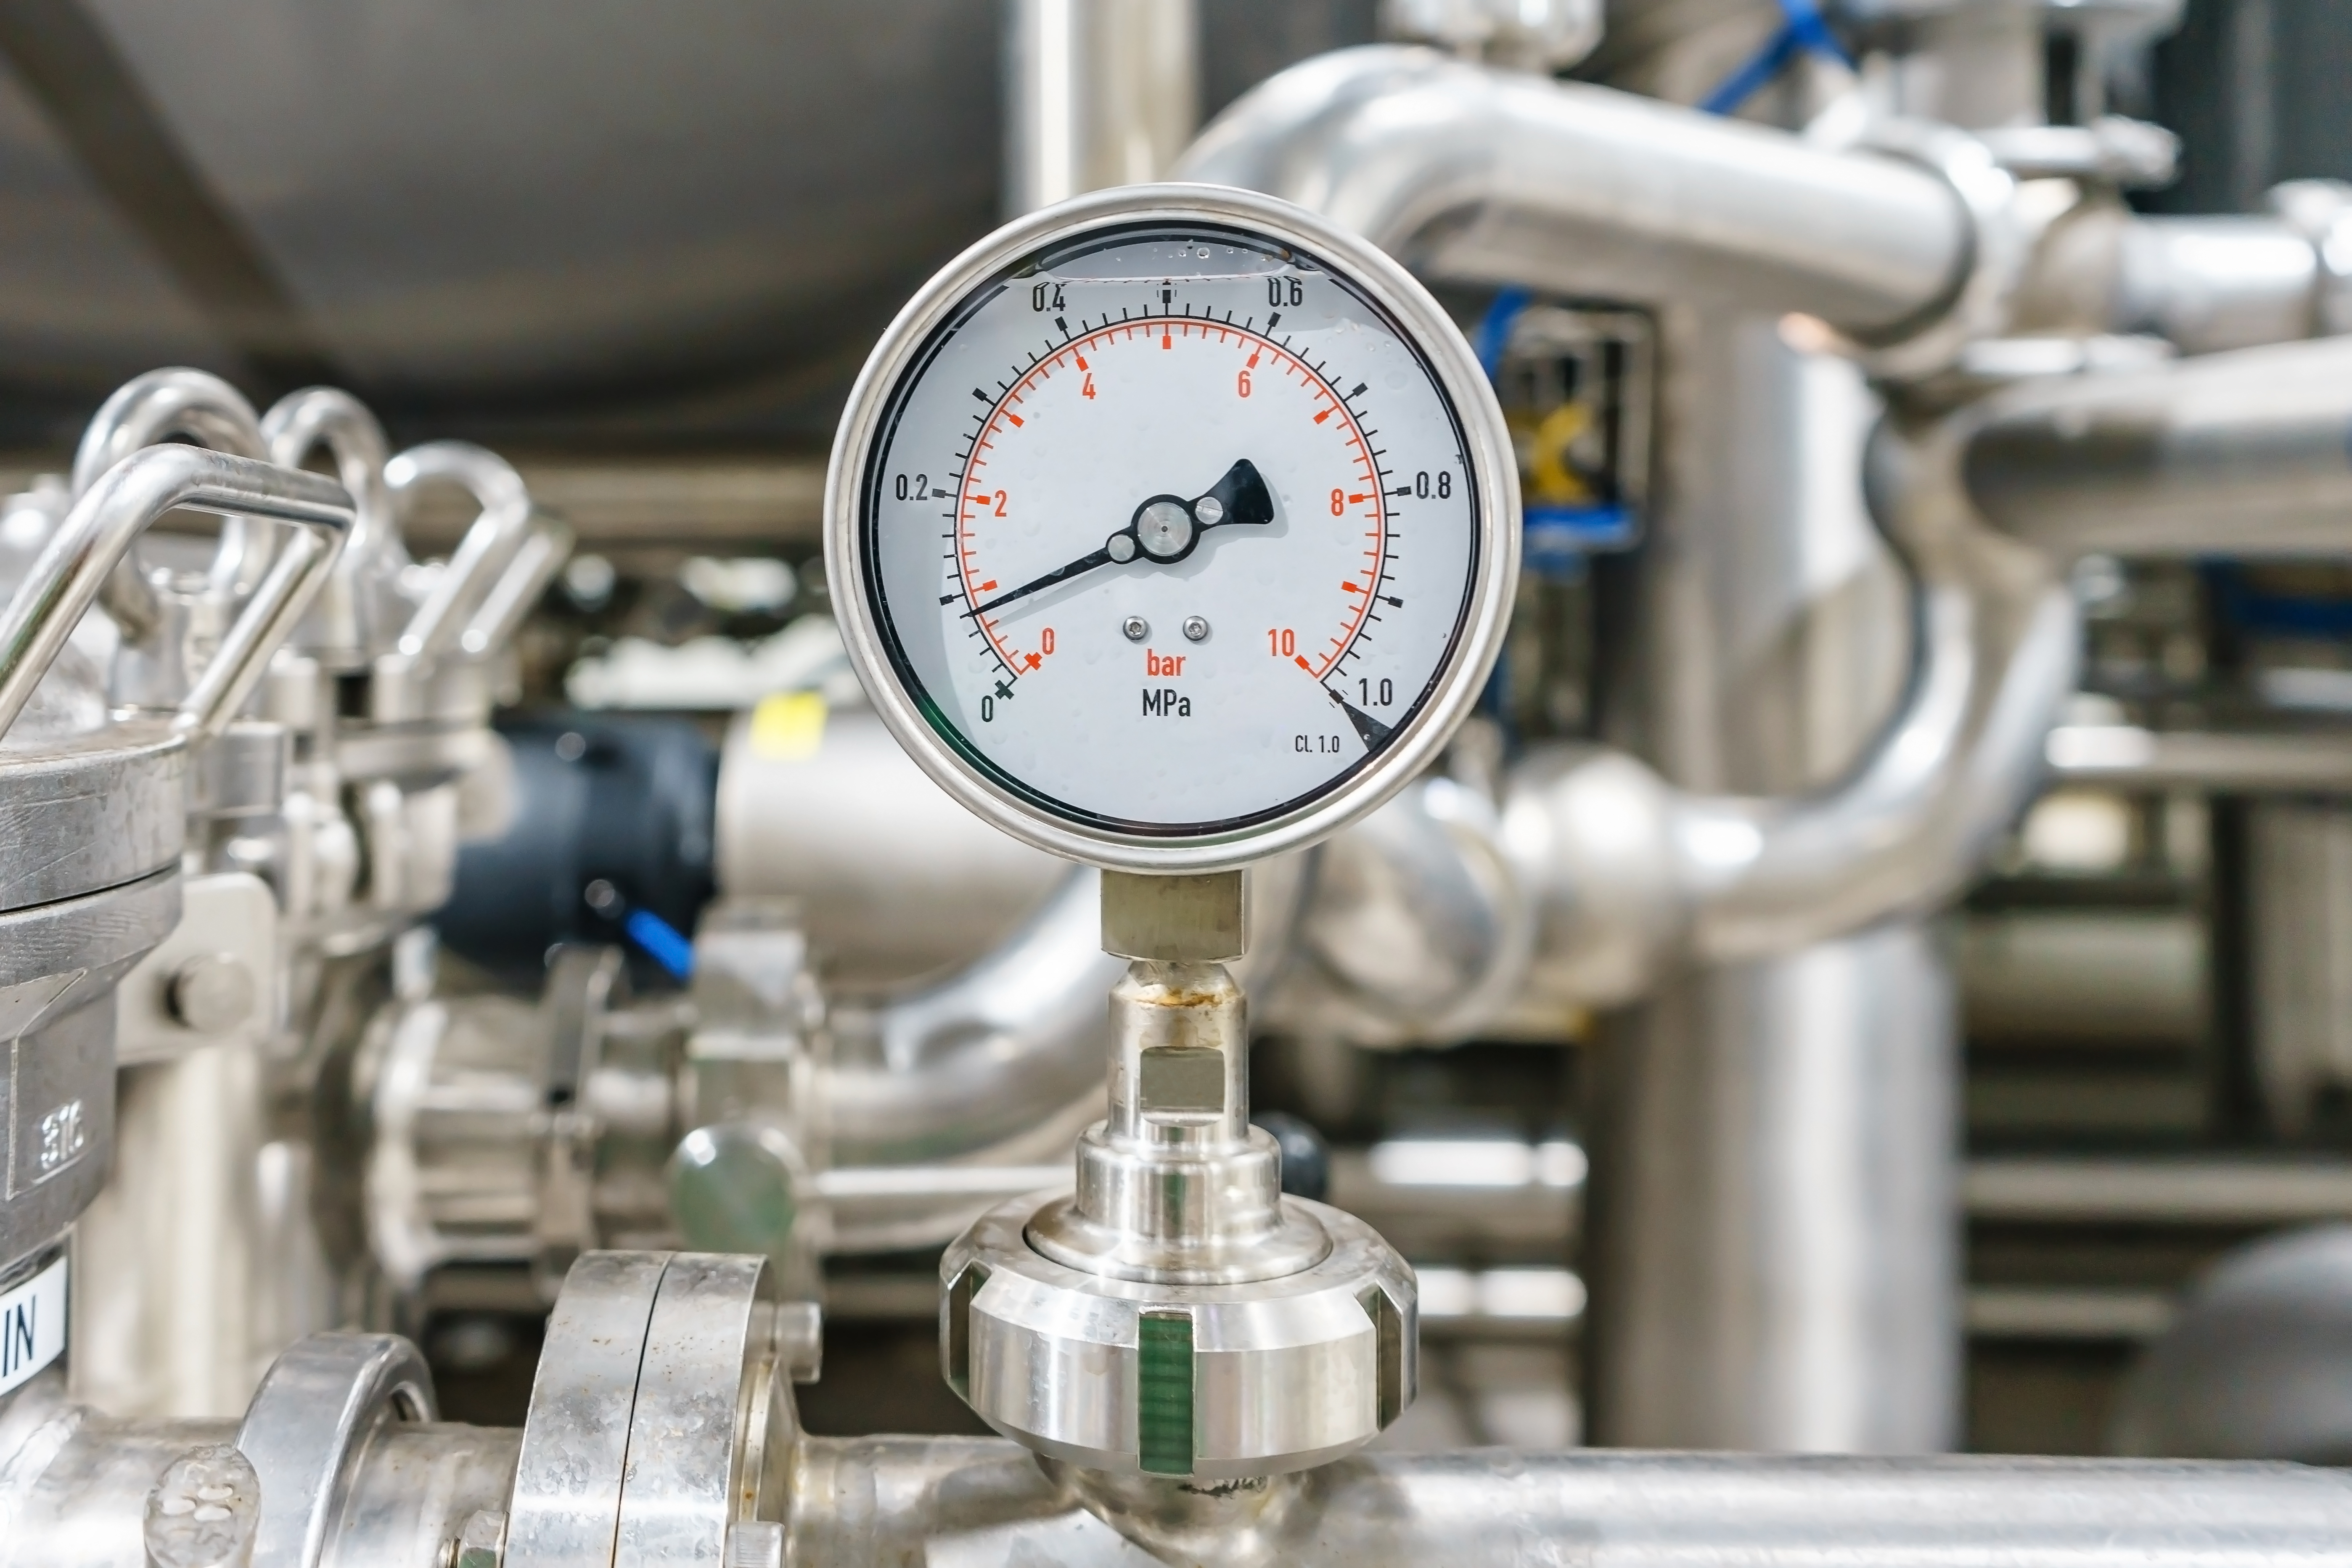 How to Refill a Hot Water Tank | Home Guides | SF Gate